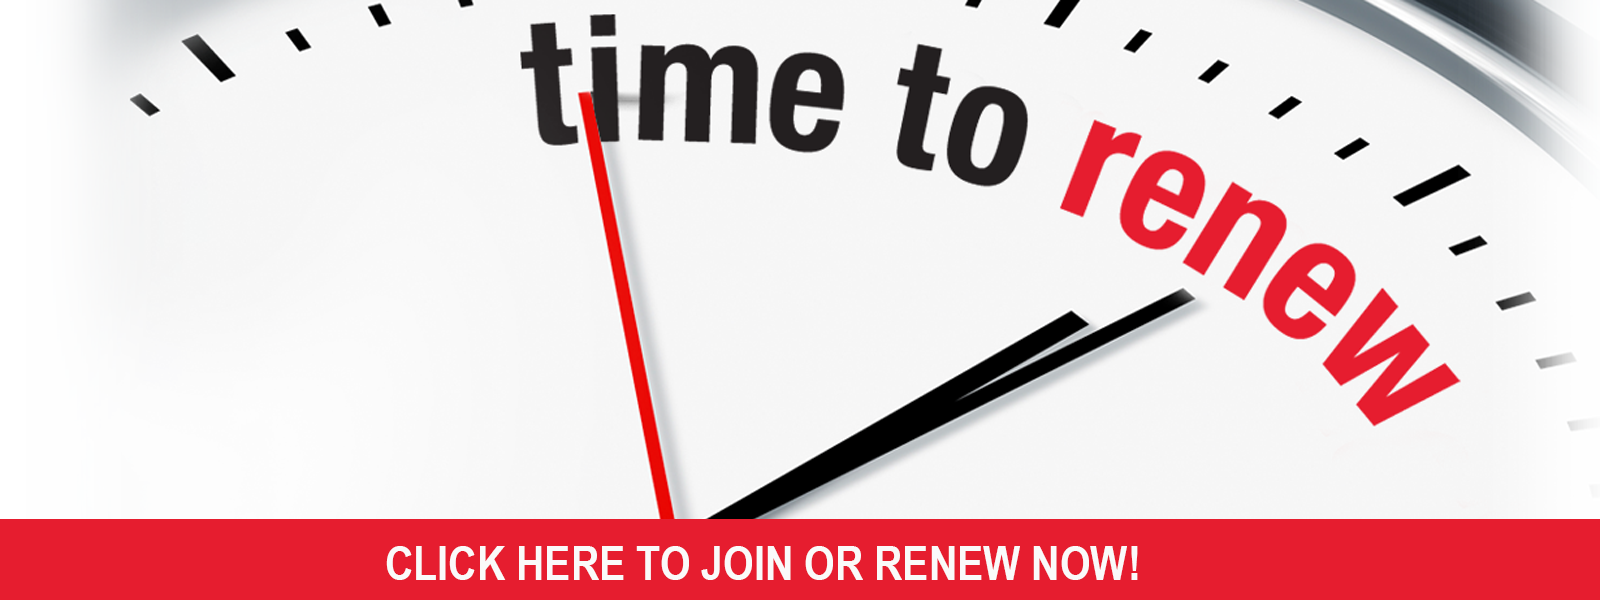 JOIN OR RENEW NOW